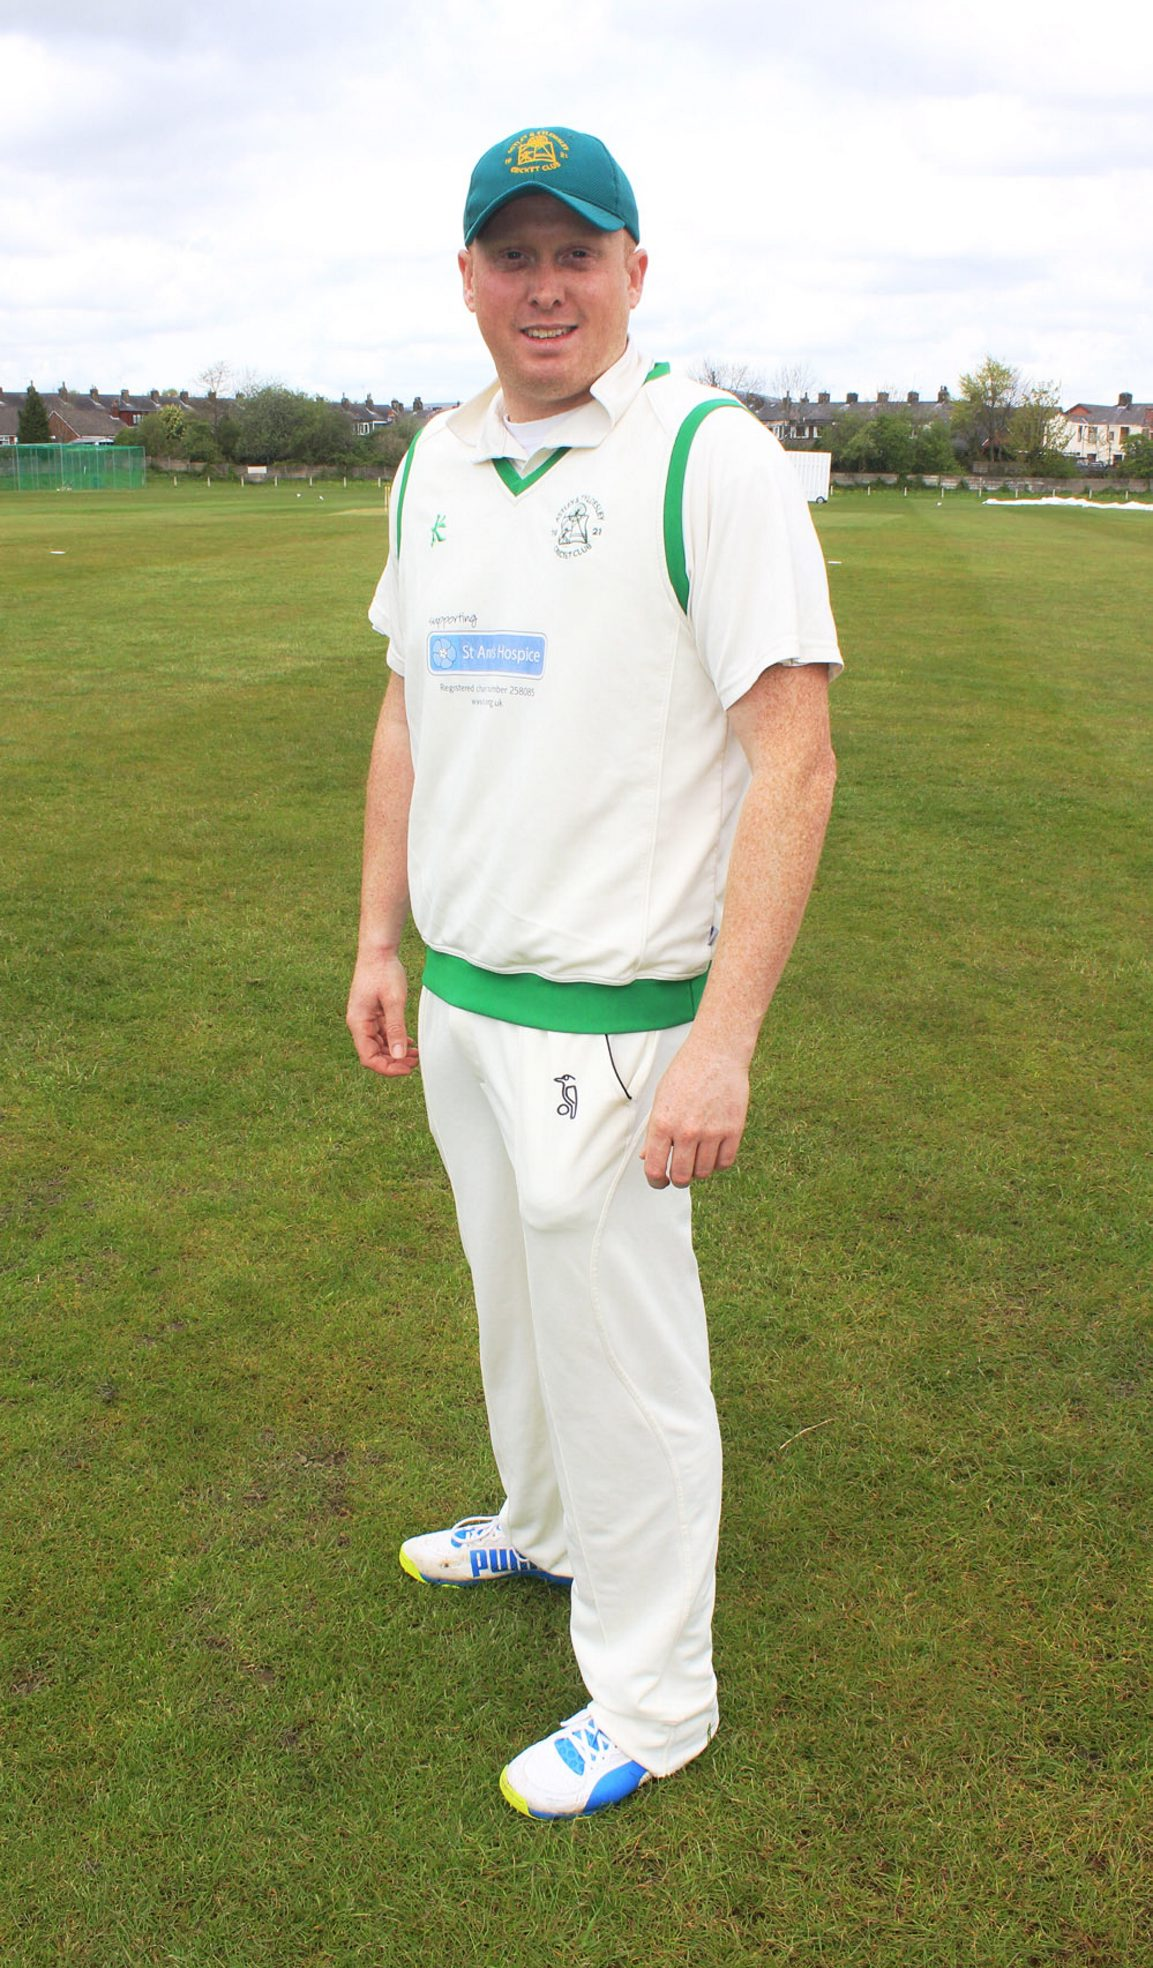 Jimmy Cutt's 6-22 and 31 runs could not prevent a one-run defeat for Astley and Tyldesley at Elton